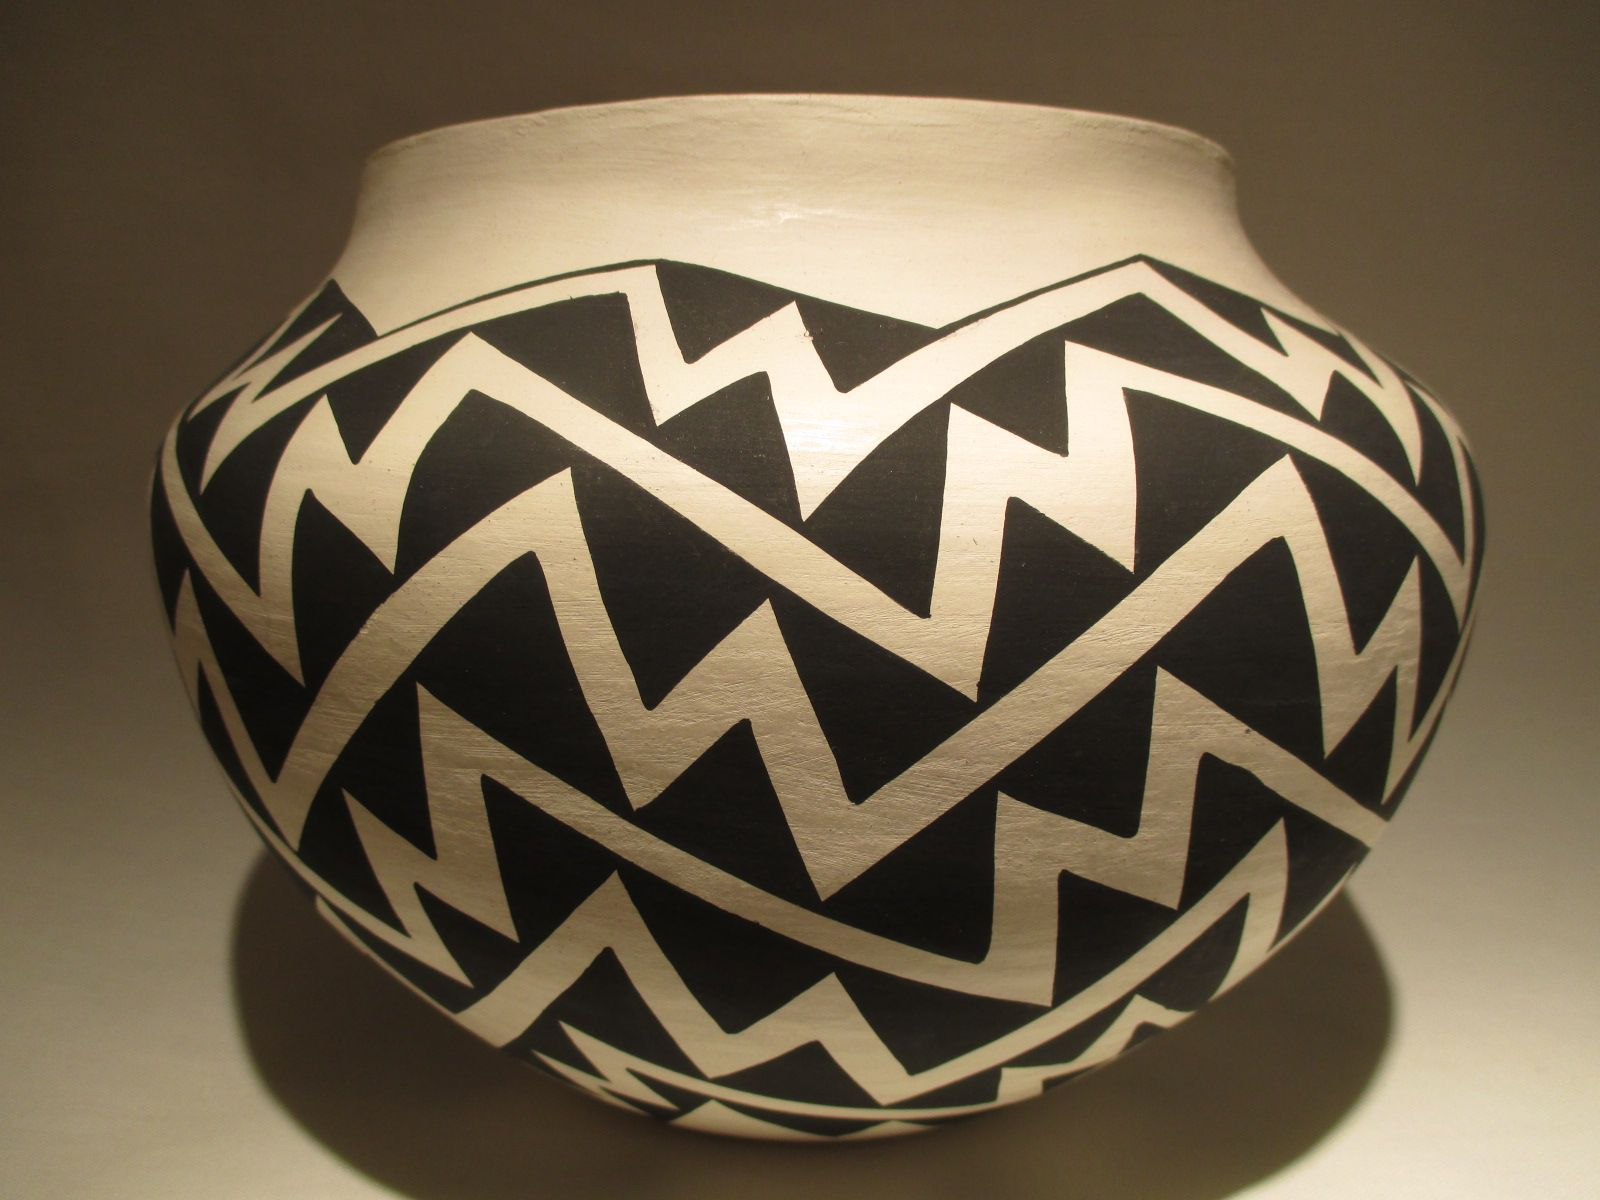 Anasazi Pottery | Art | Pinterest | Pottery and Colorado